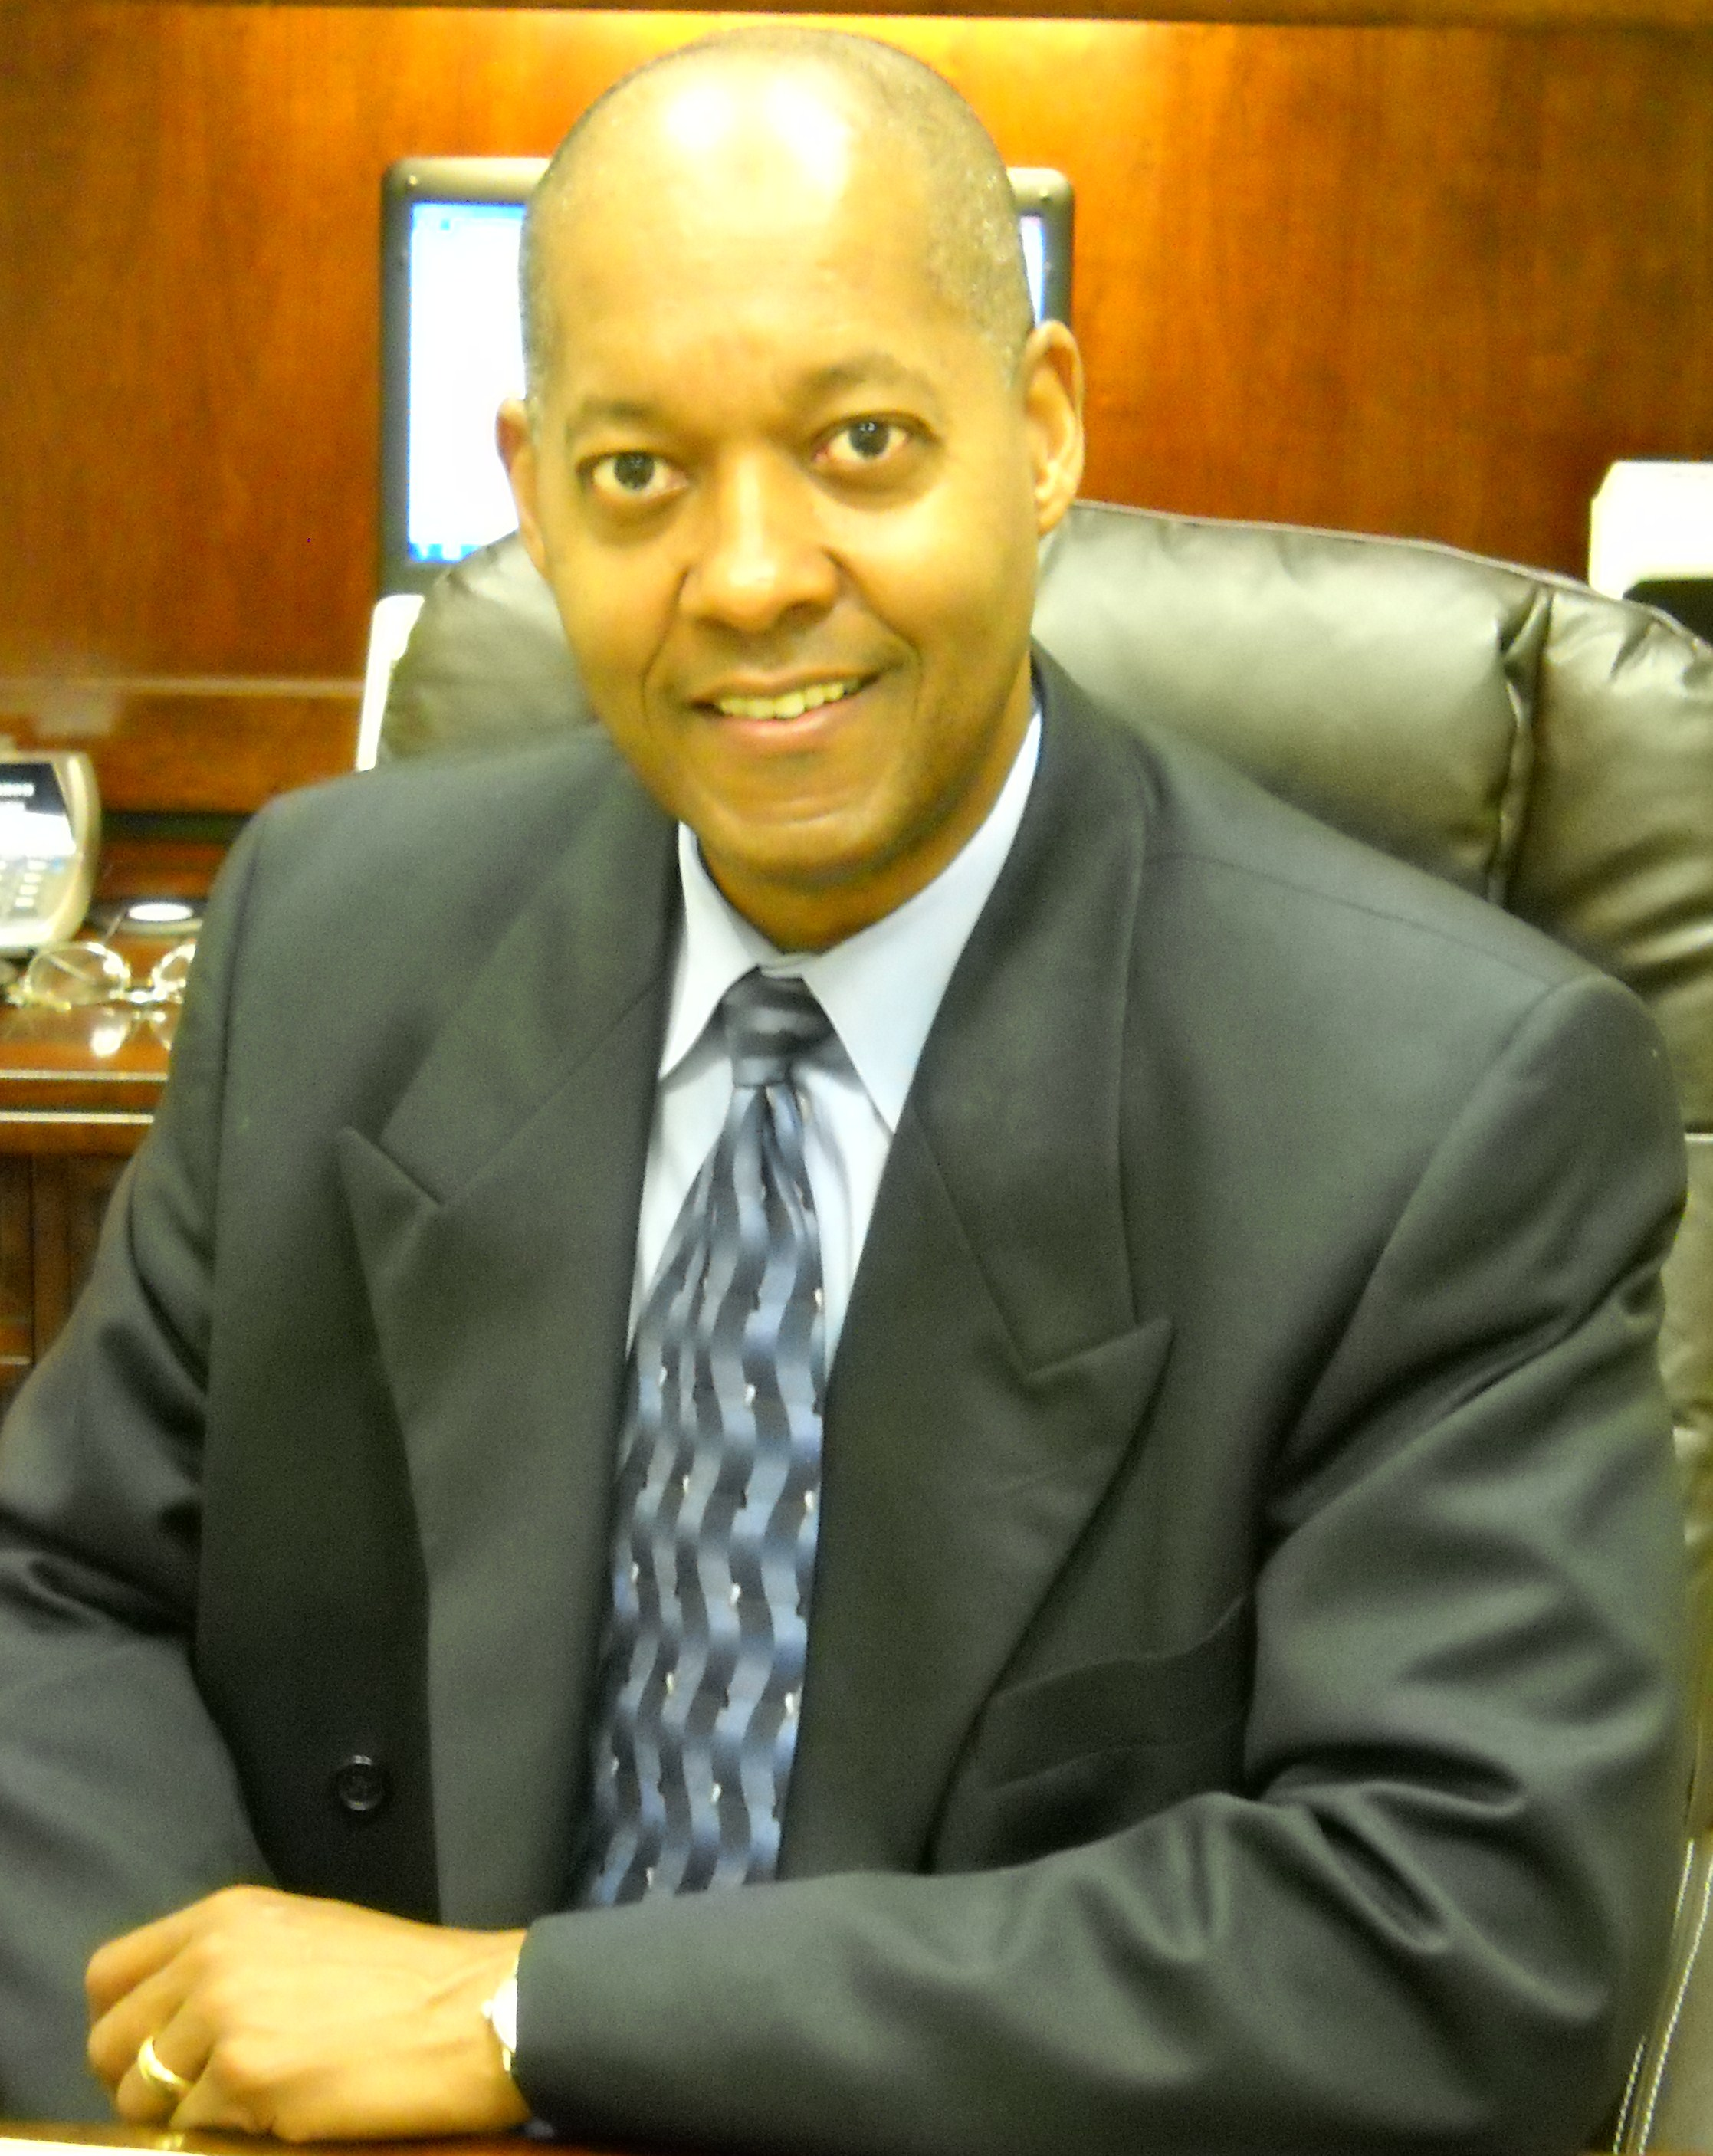 Curtis Wright of Wright Financial Group (Image: Courtesy of Subject)